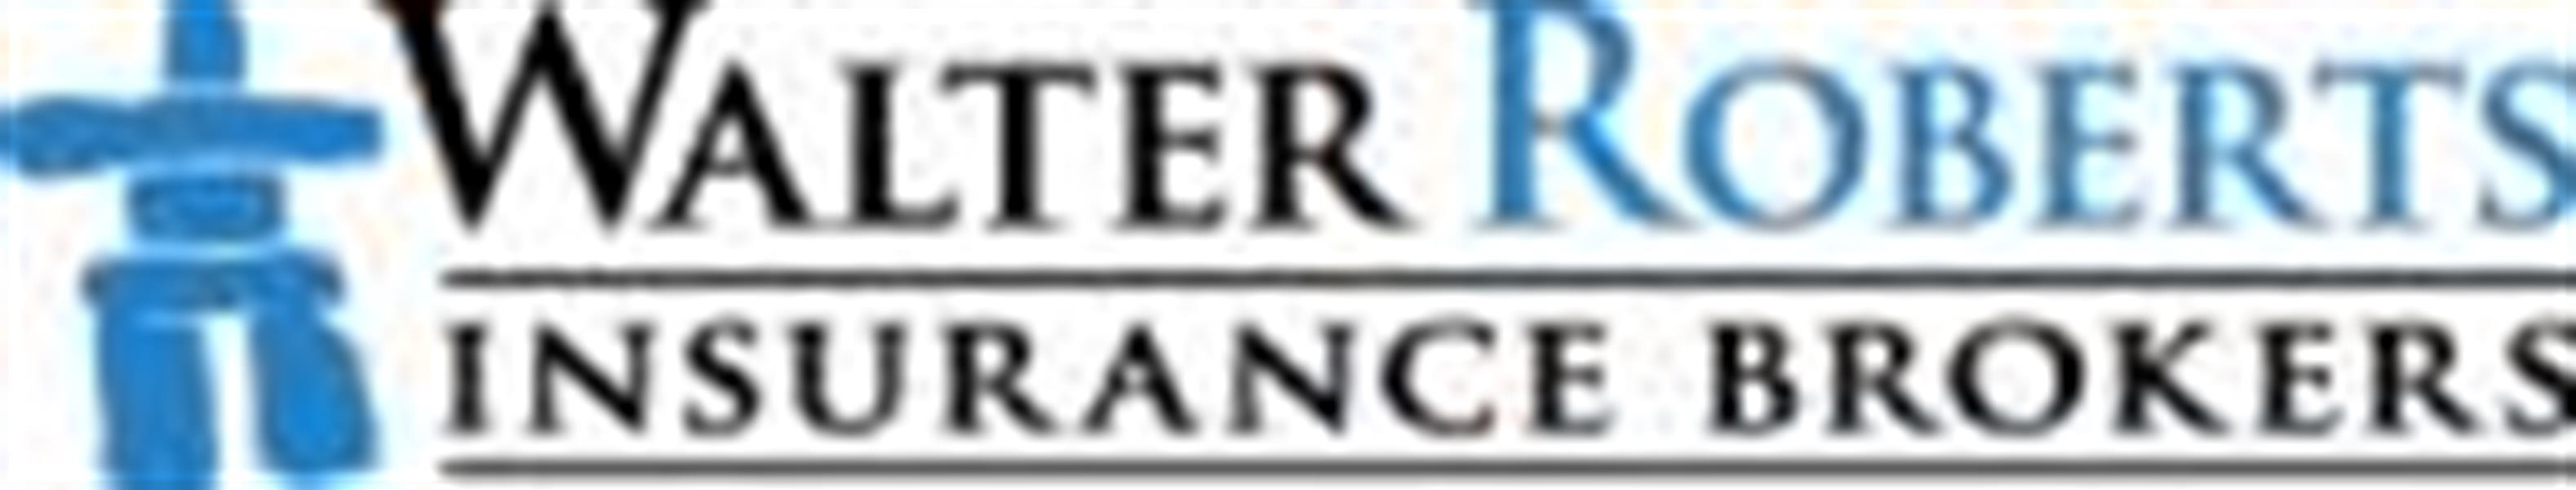 Walter Roberts Insurance Brokers Inc.